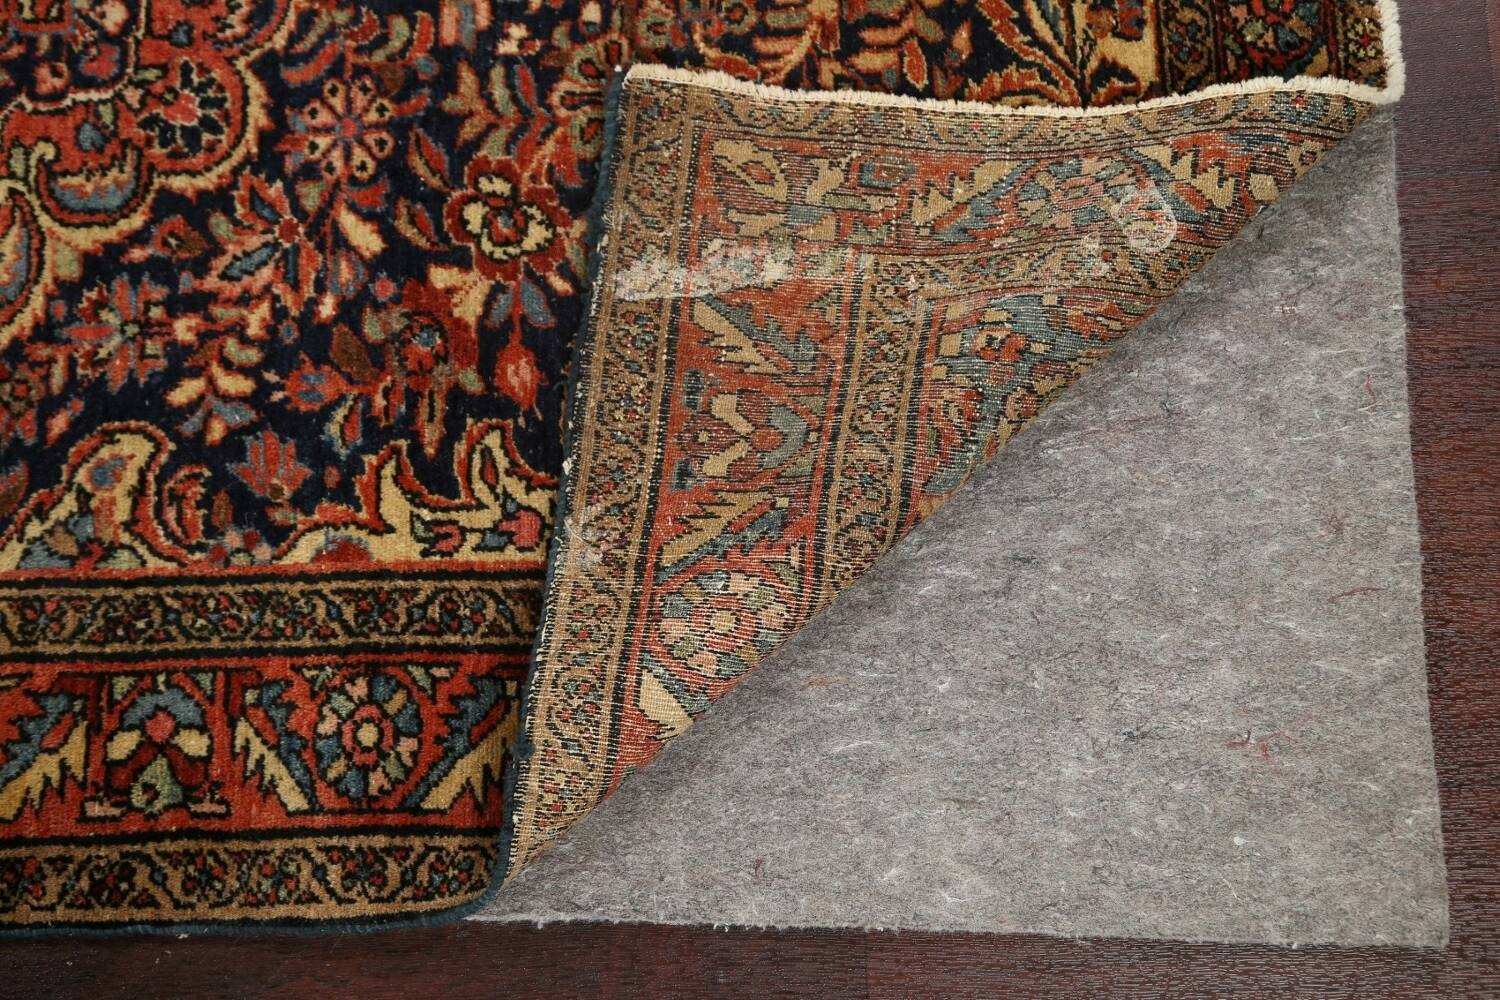 Antique Vegetable Dye Malayer Persian Area Rug 5x6 image 7